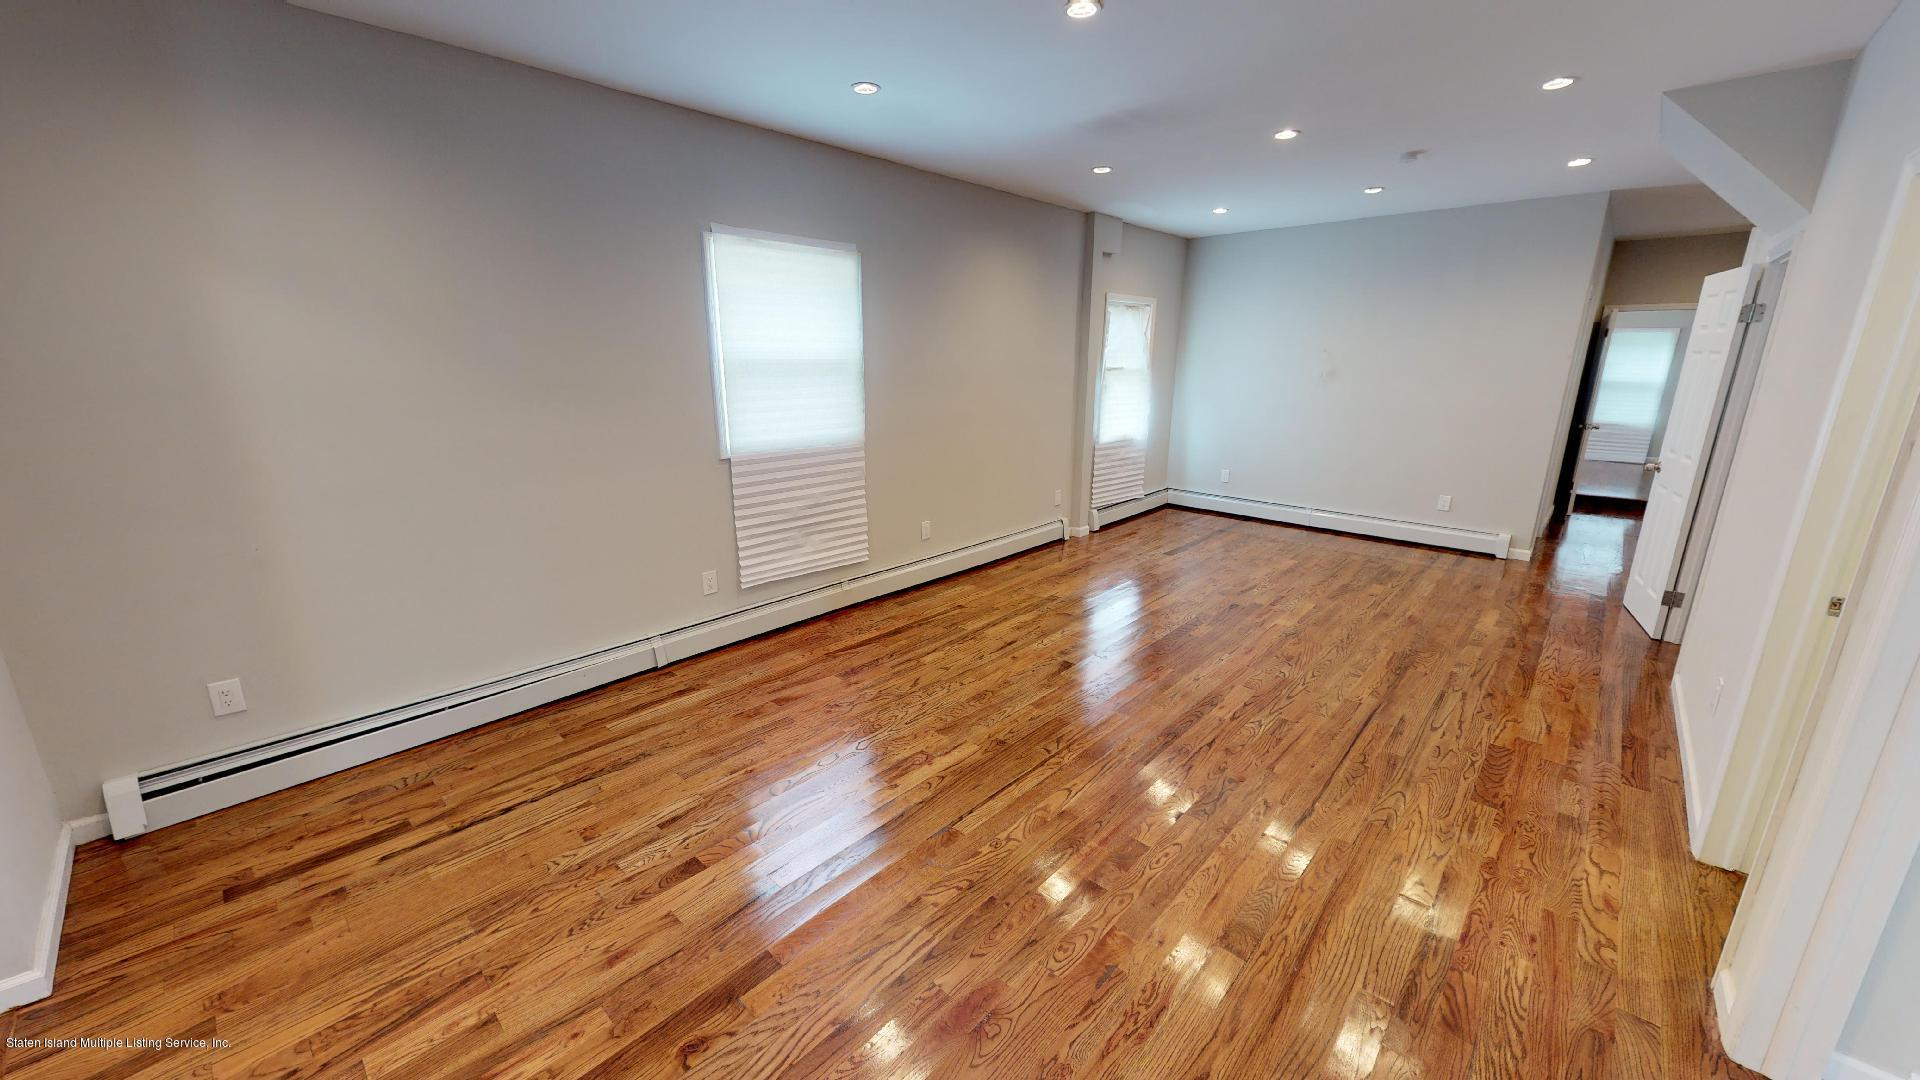 Two Family - Detached 41 Faber Street  Staten Island, NY 10302, MLS-1128587-11